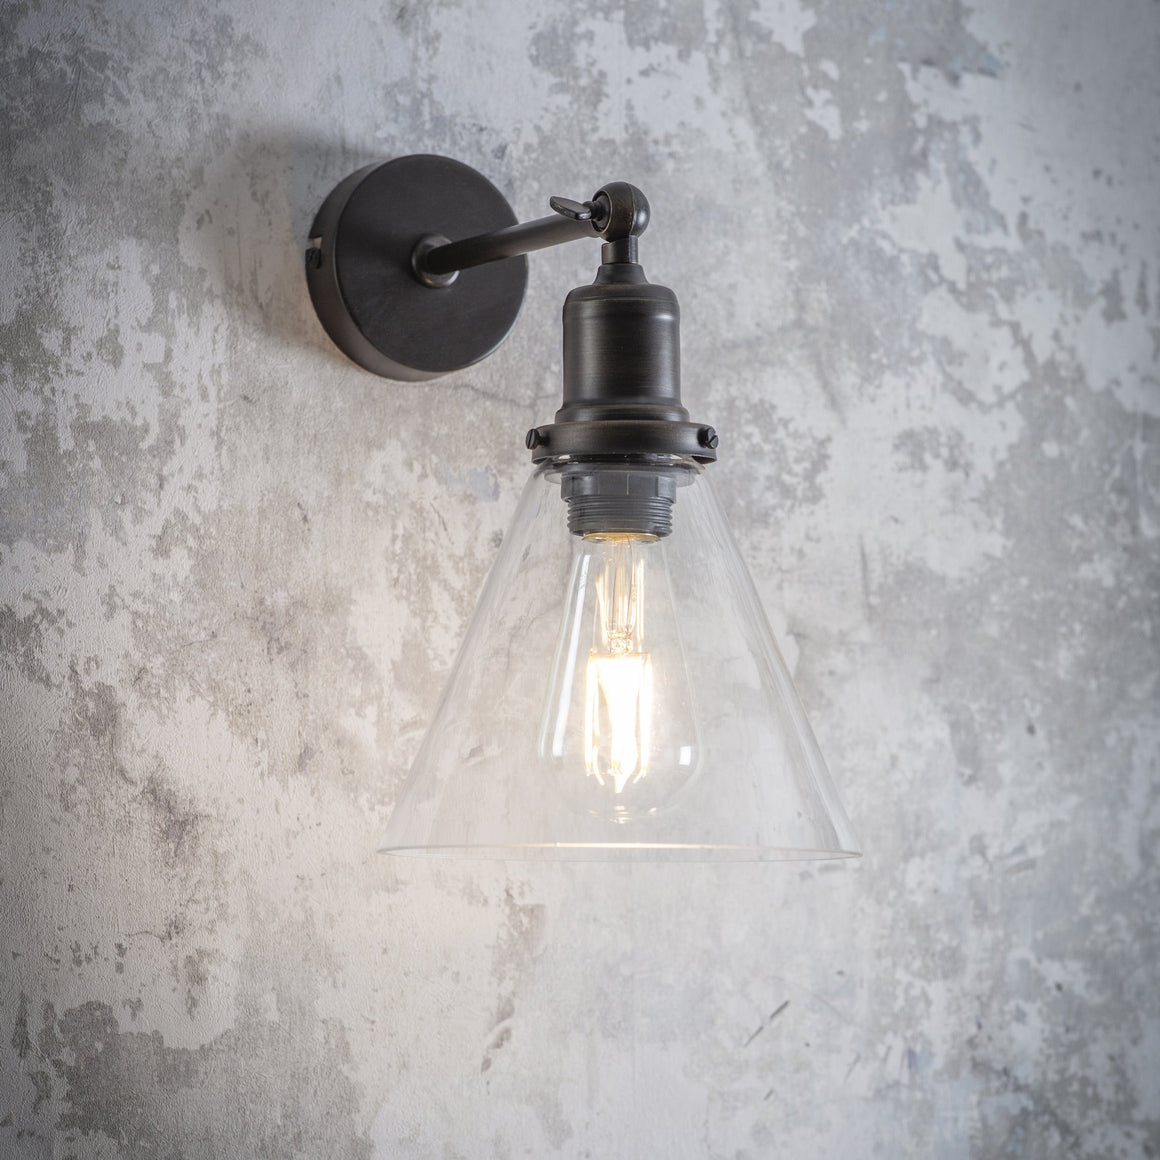 HOXTON WALL LIGHT